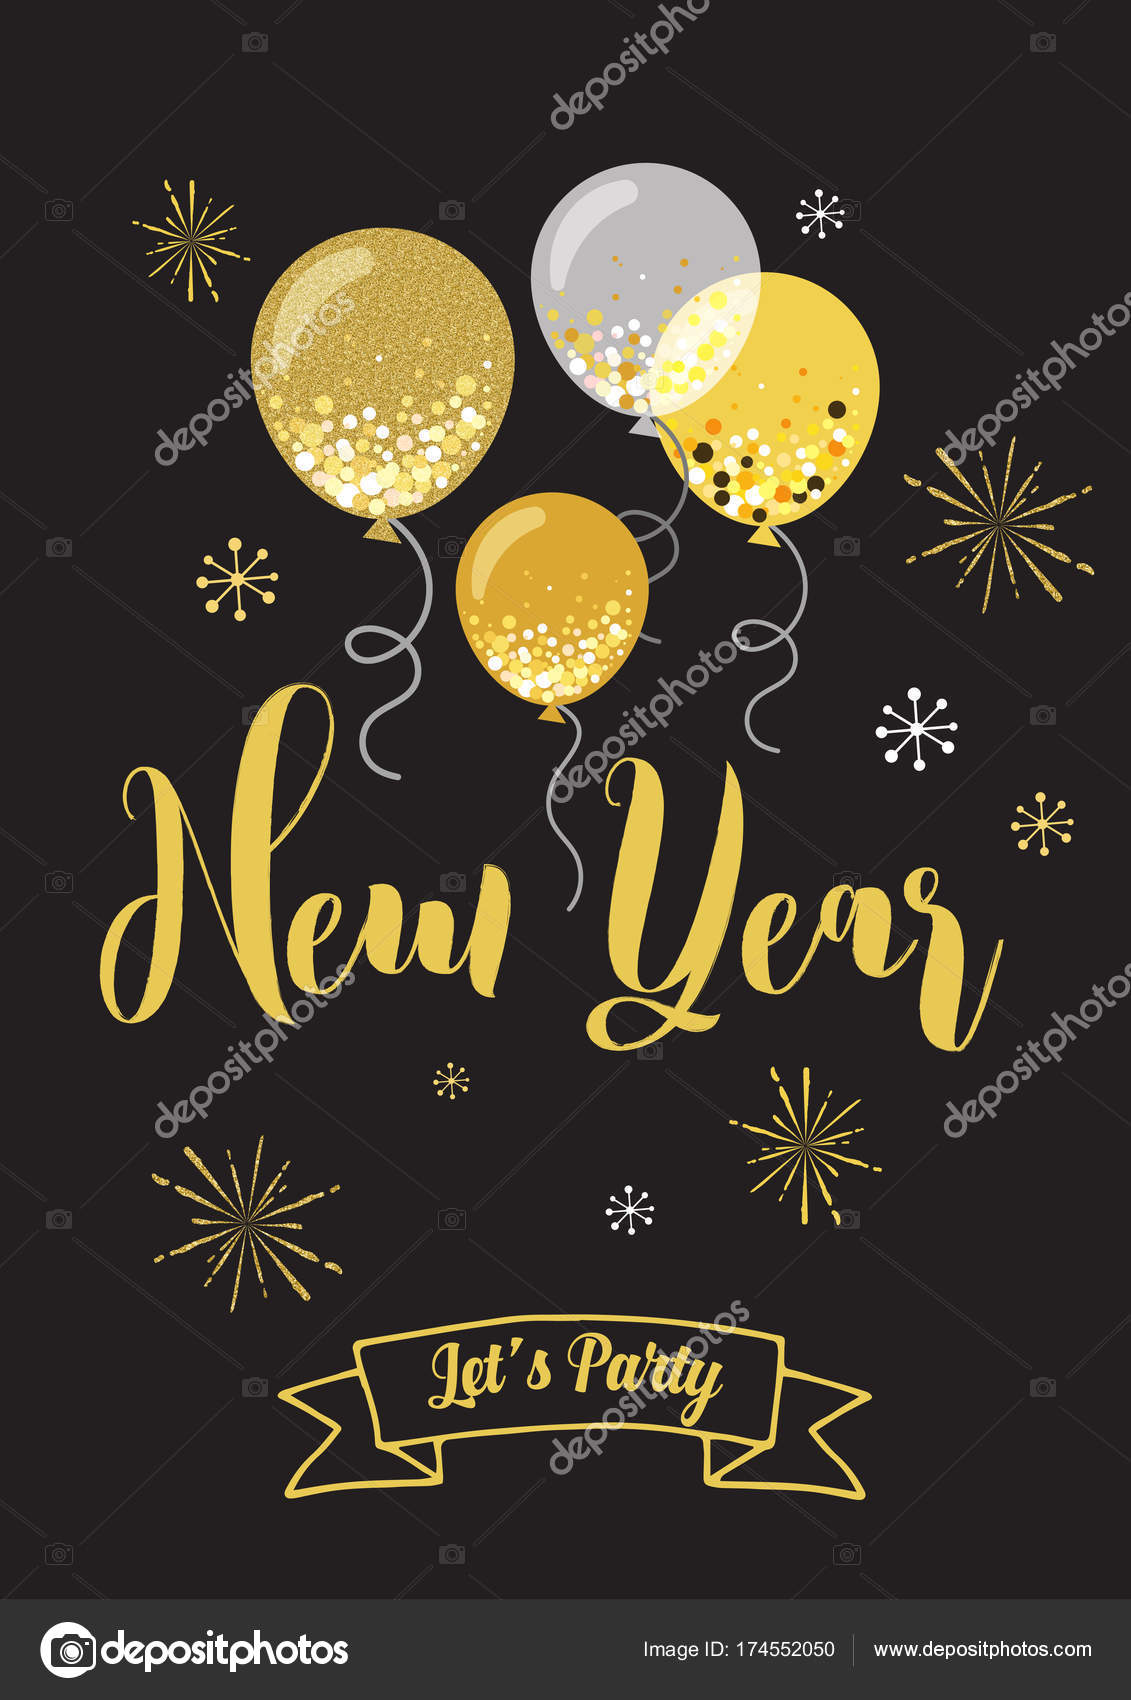 New Year party invitation. — Stock Vector © Shekularaz #174552050